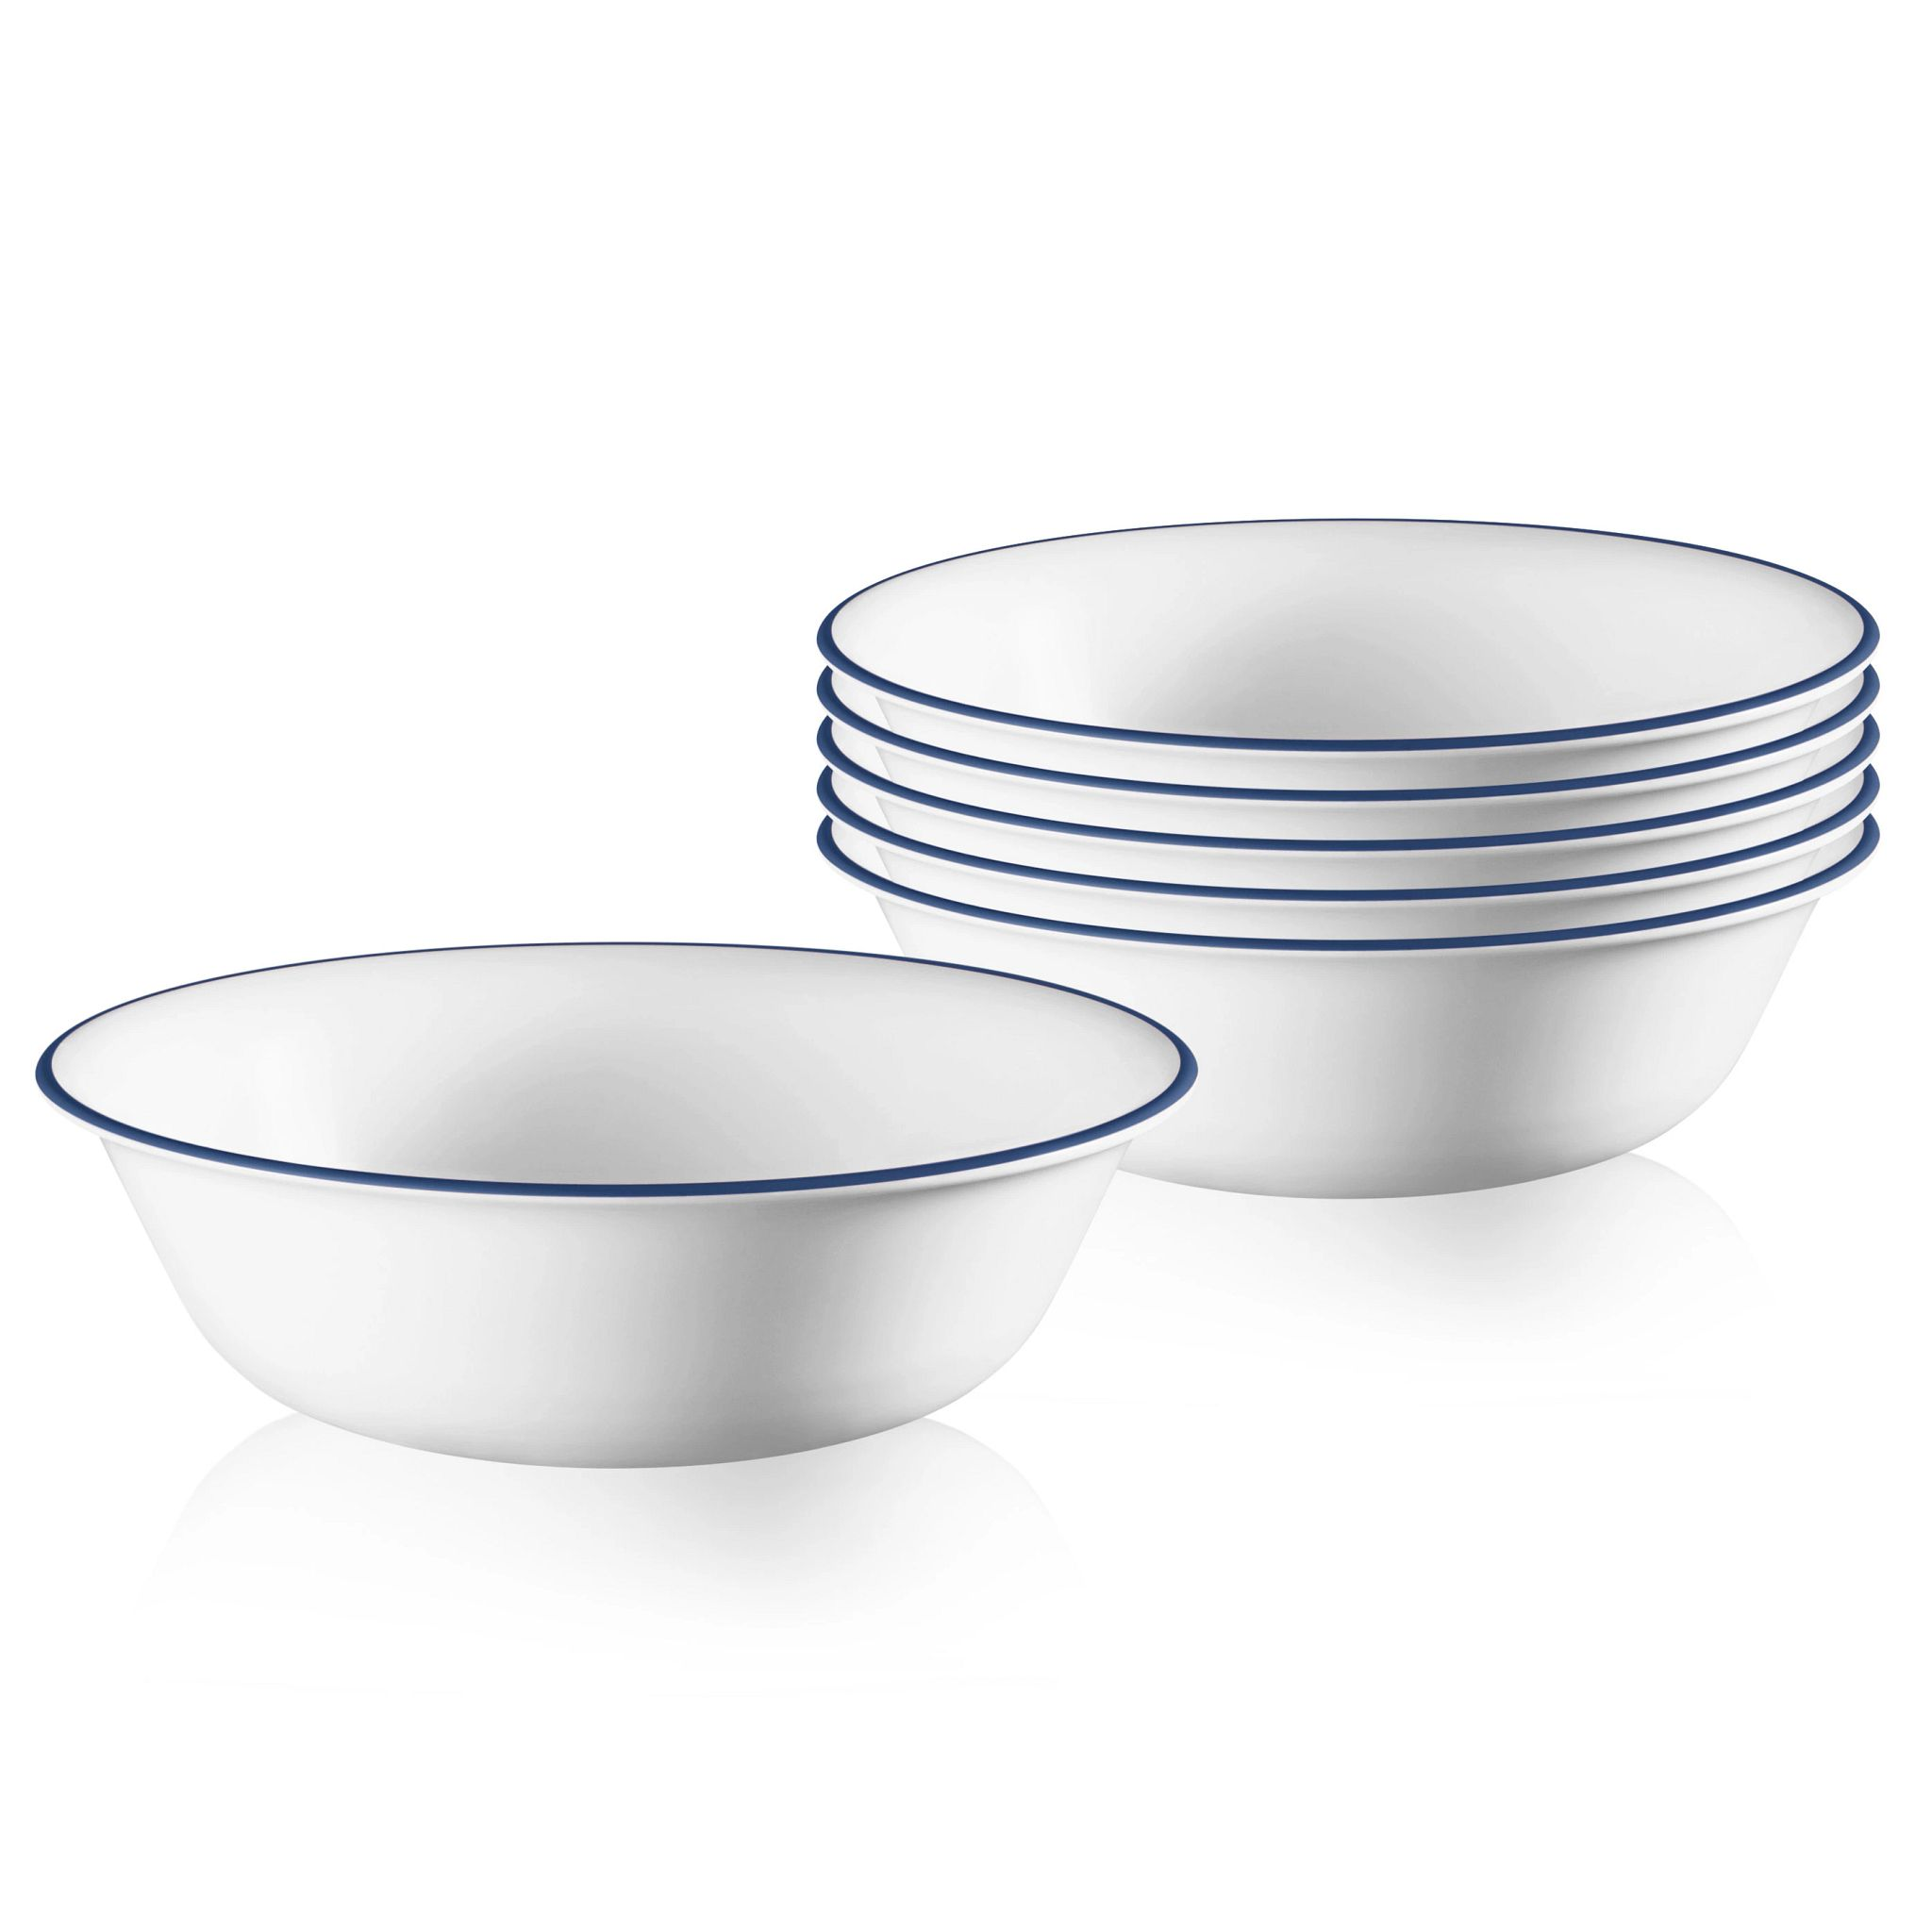 Artemis 18-ounce Cereal Bowls, 6-pack